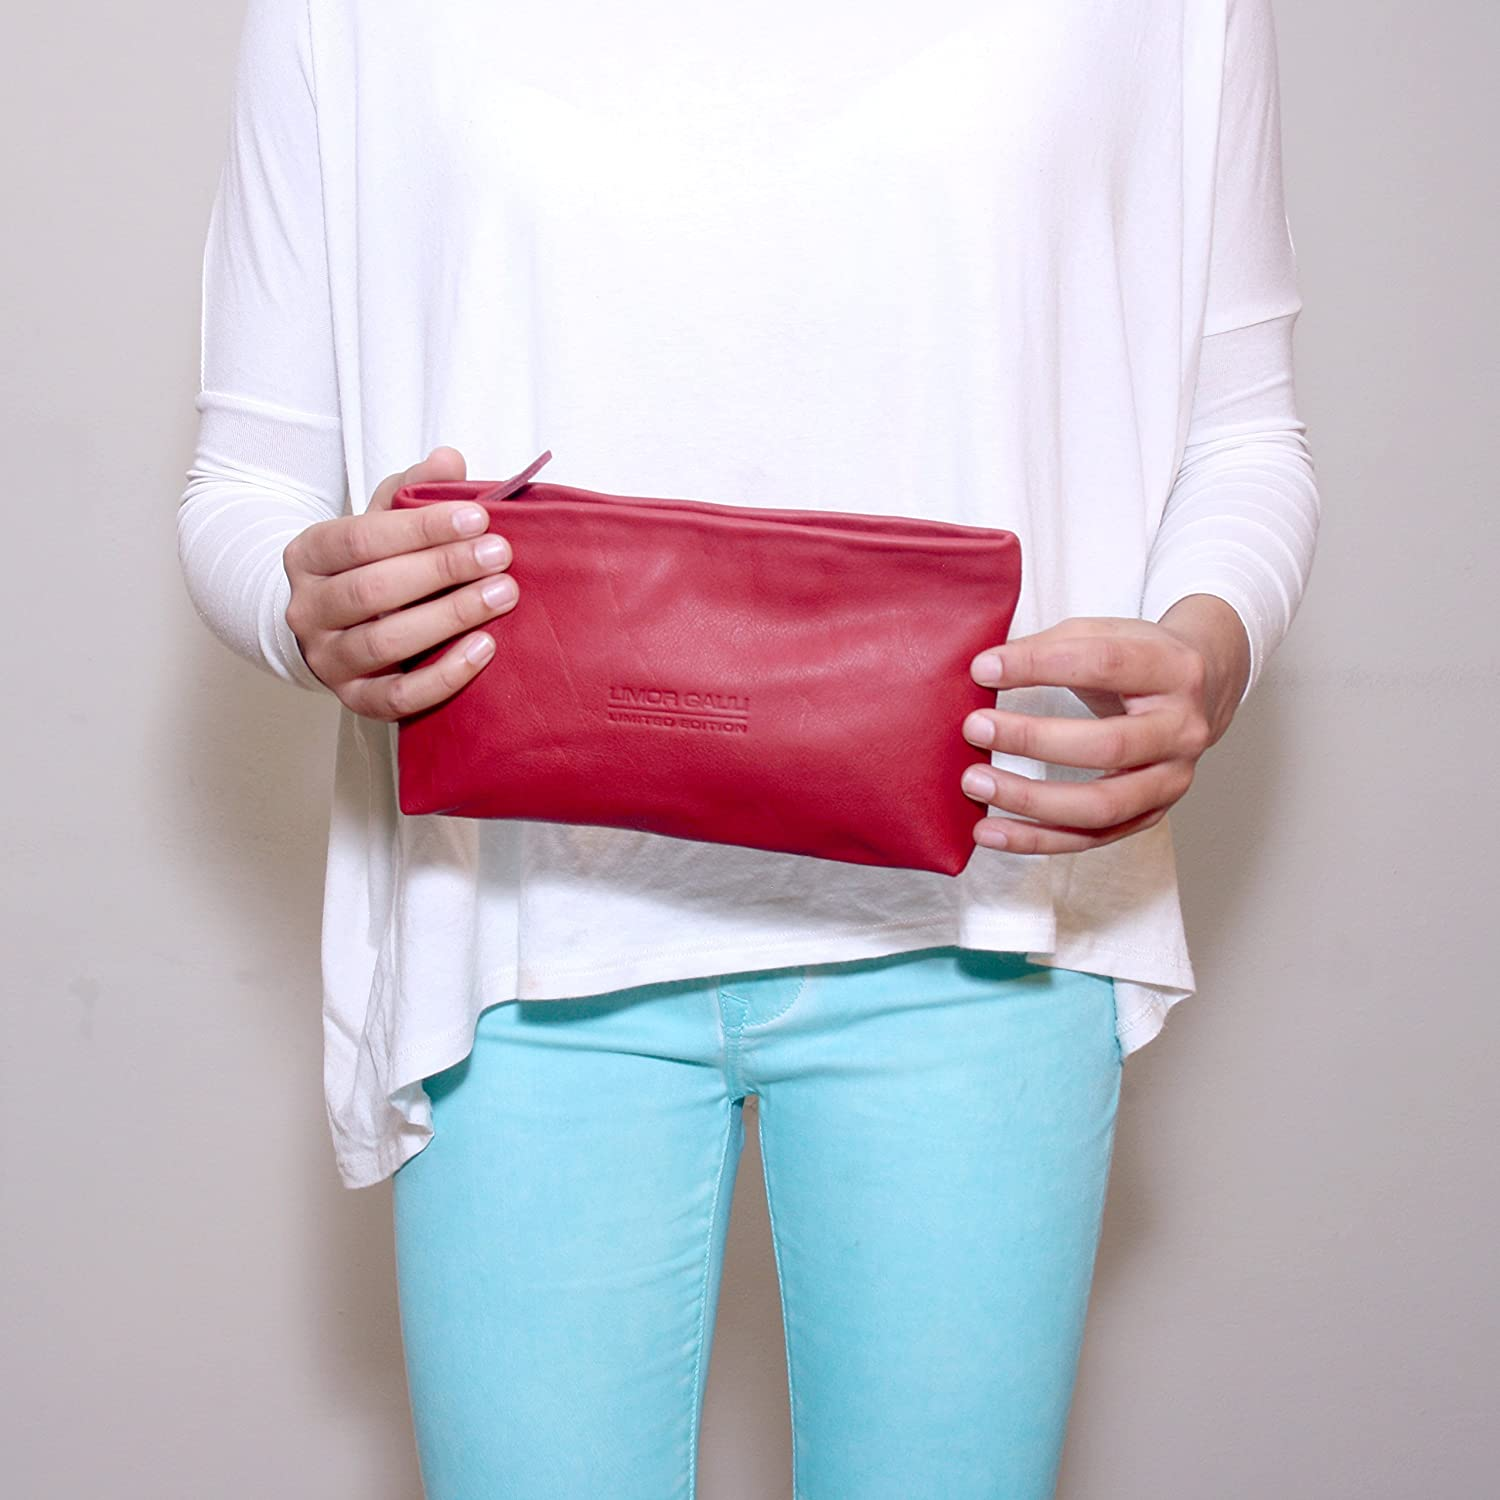 Soft Small Red Leather Pouch Makeup bag case women clutch zippered wallet purse cosmetic handbag